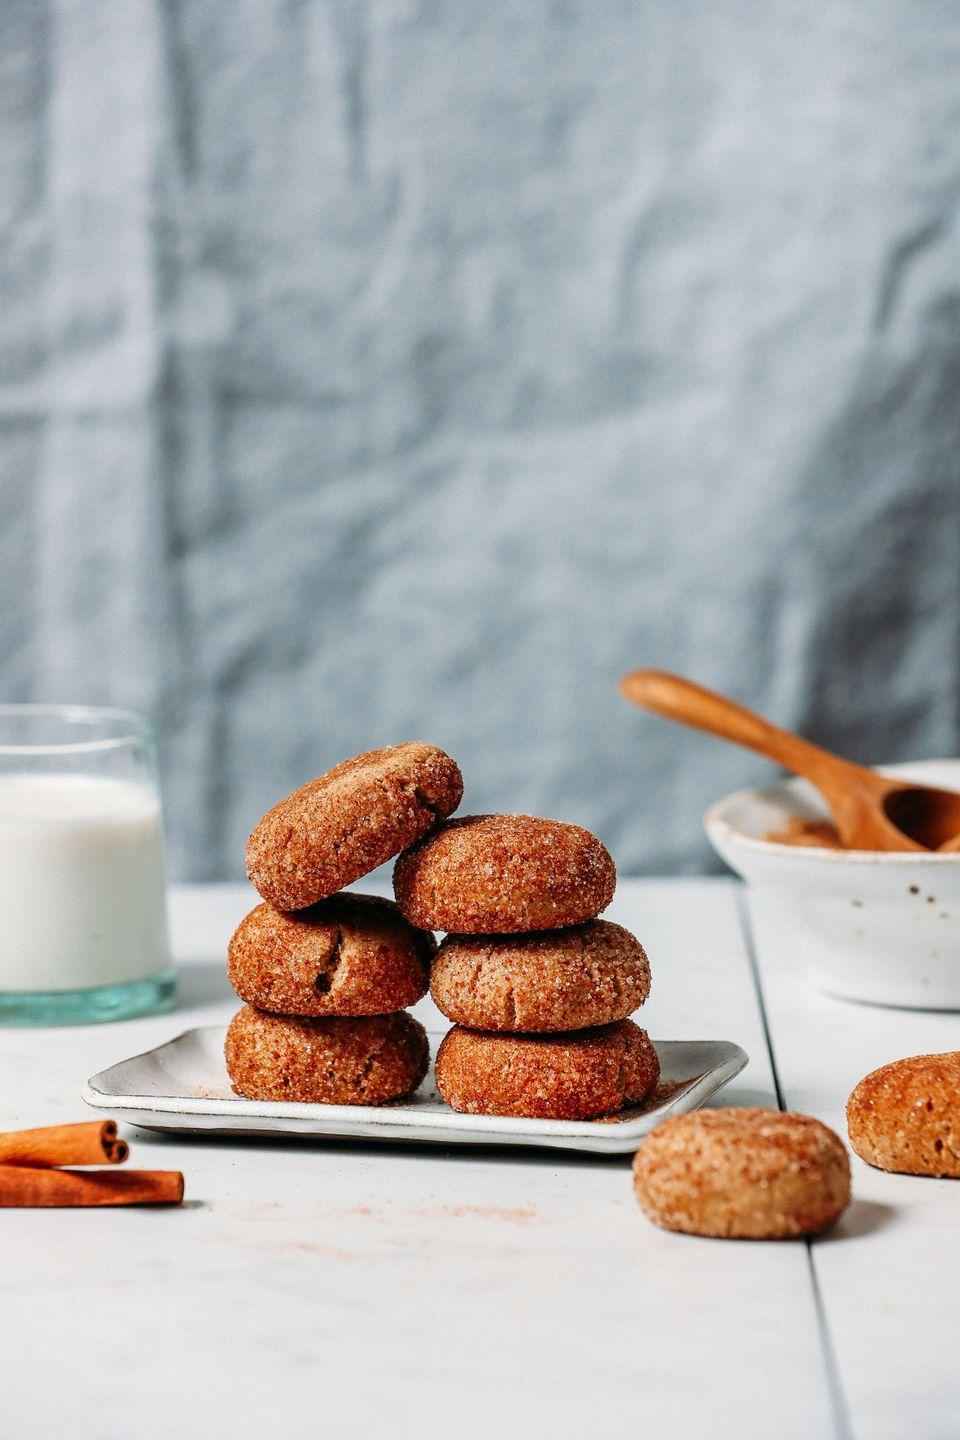 """<p>Fluffy, crisp, and spiked with cinnamon, these are sure to be your new favorite holiday cookies. They're vegan, gluten-free, and naturally sweetened too!</p><p><strong>Get the recipe at <a href=""""https://minimalistbaker.com/1-bowl-snickerdoodle-cookies-vegan-gf/"""" rel=""""nofollow noopener"""" target=""""_blank"""" data-ylk=""""slk:Minimalist Baker"""" class=""""link rapid-noclick-resp"""">Minimalist Baker</a>.</strong></p>"""